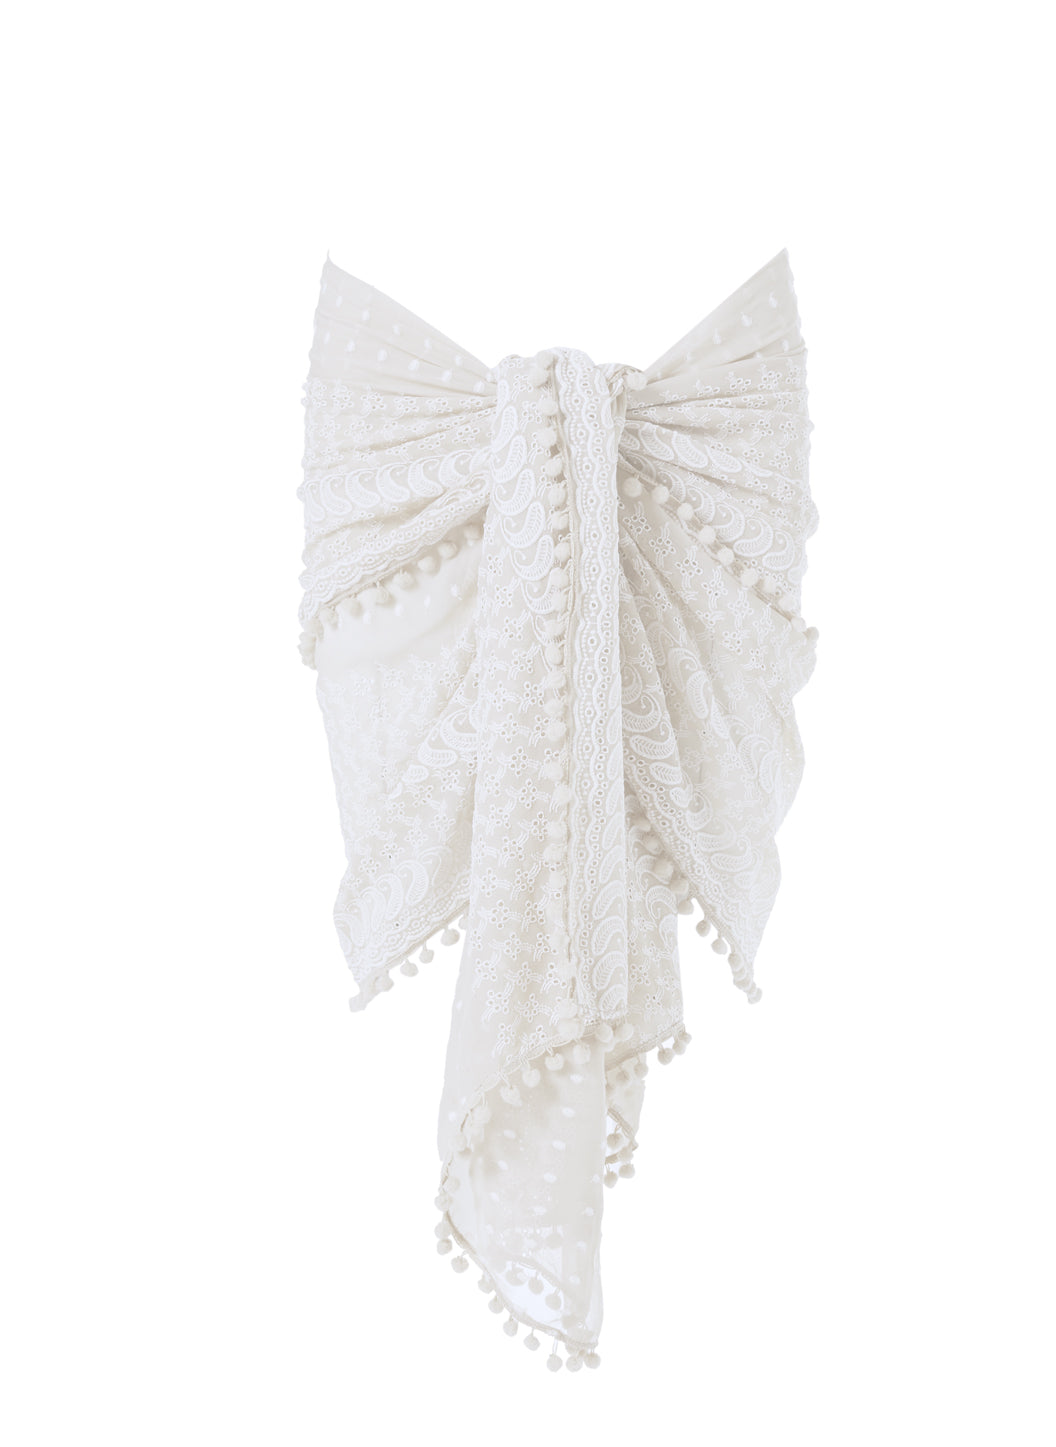 Pareo Cream Embroidered Multi-Way Cover Up - Melissa Odabash Pareos